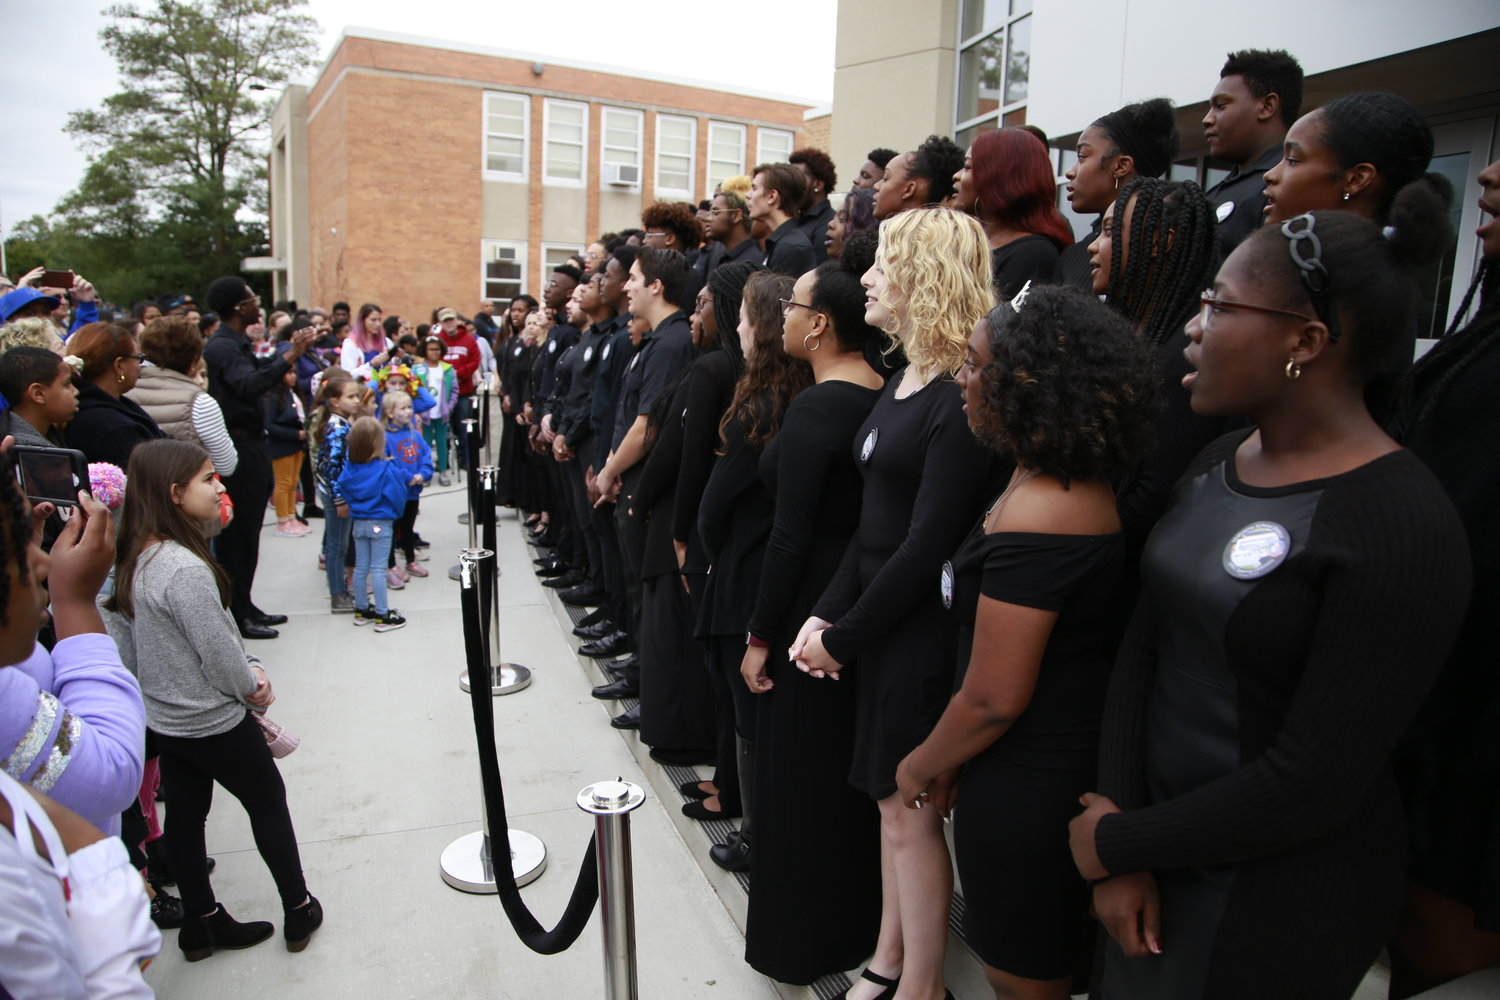 The high school's select choir sang the national anthem to start the ceremony.